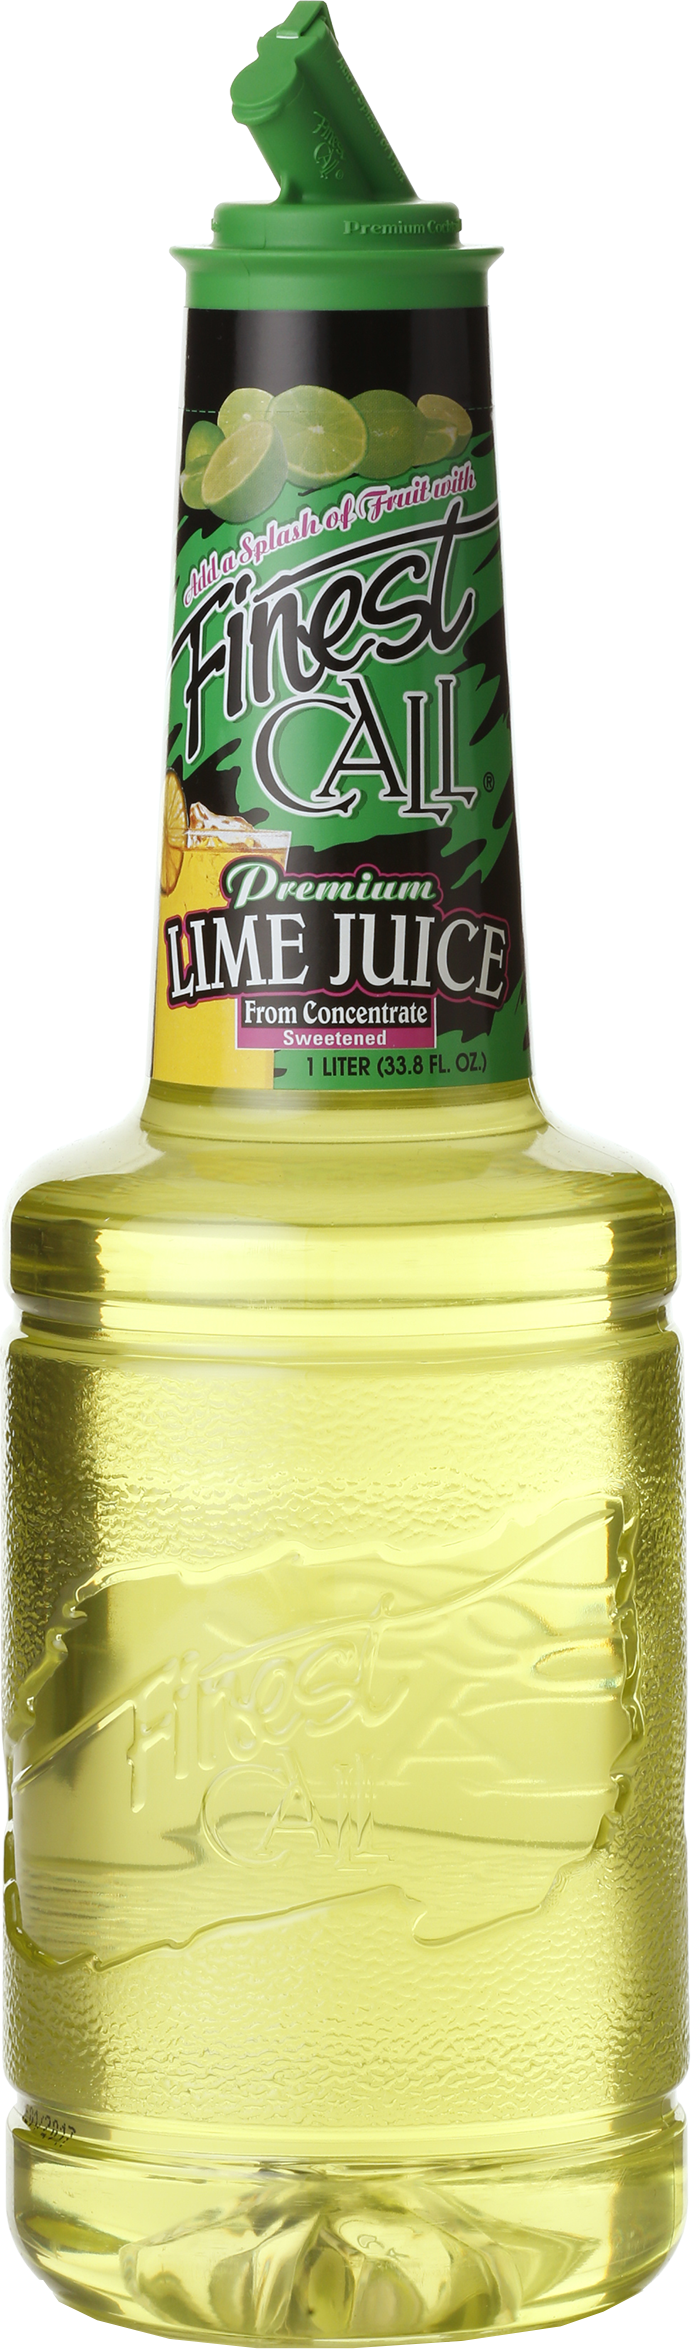 Lime Juice – Finest Call